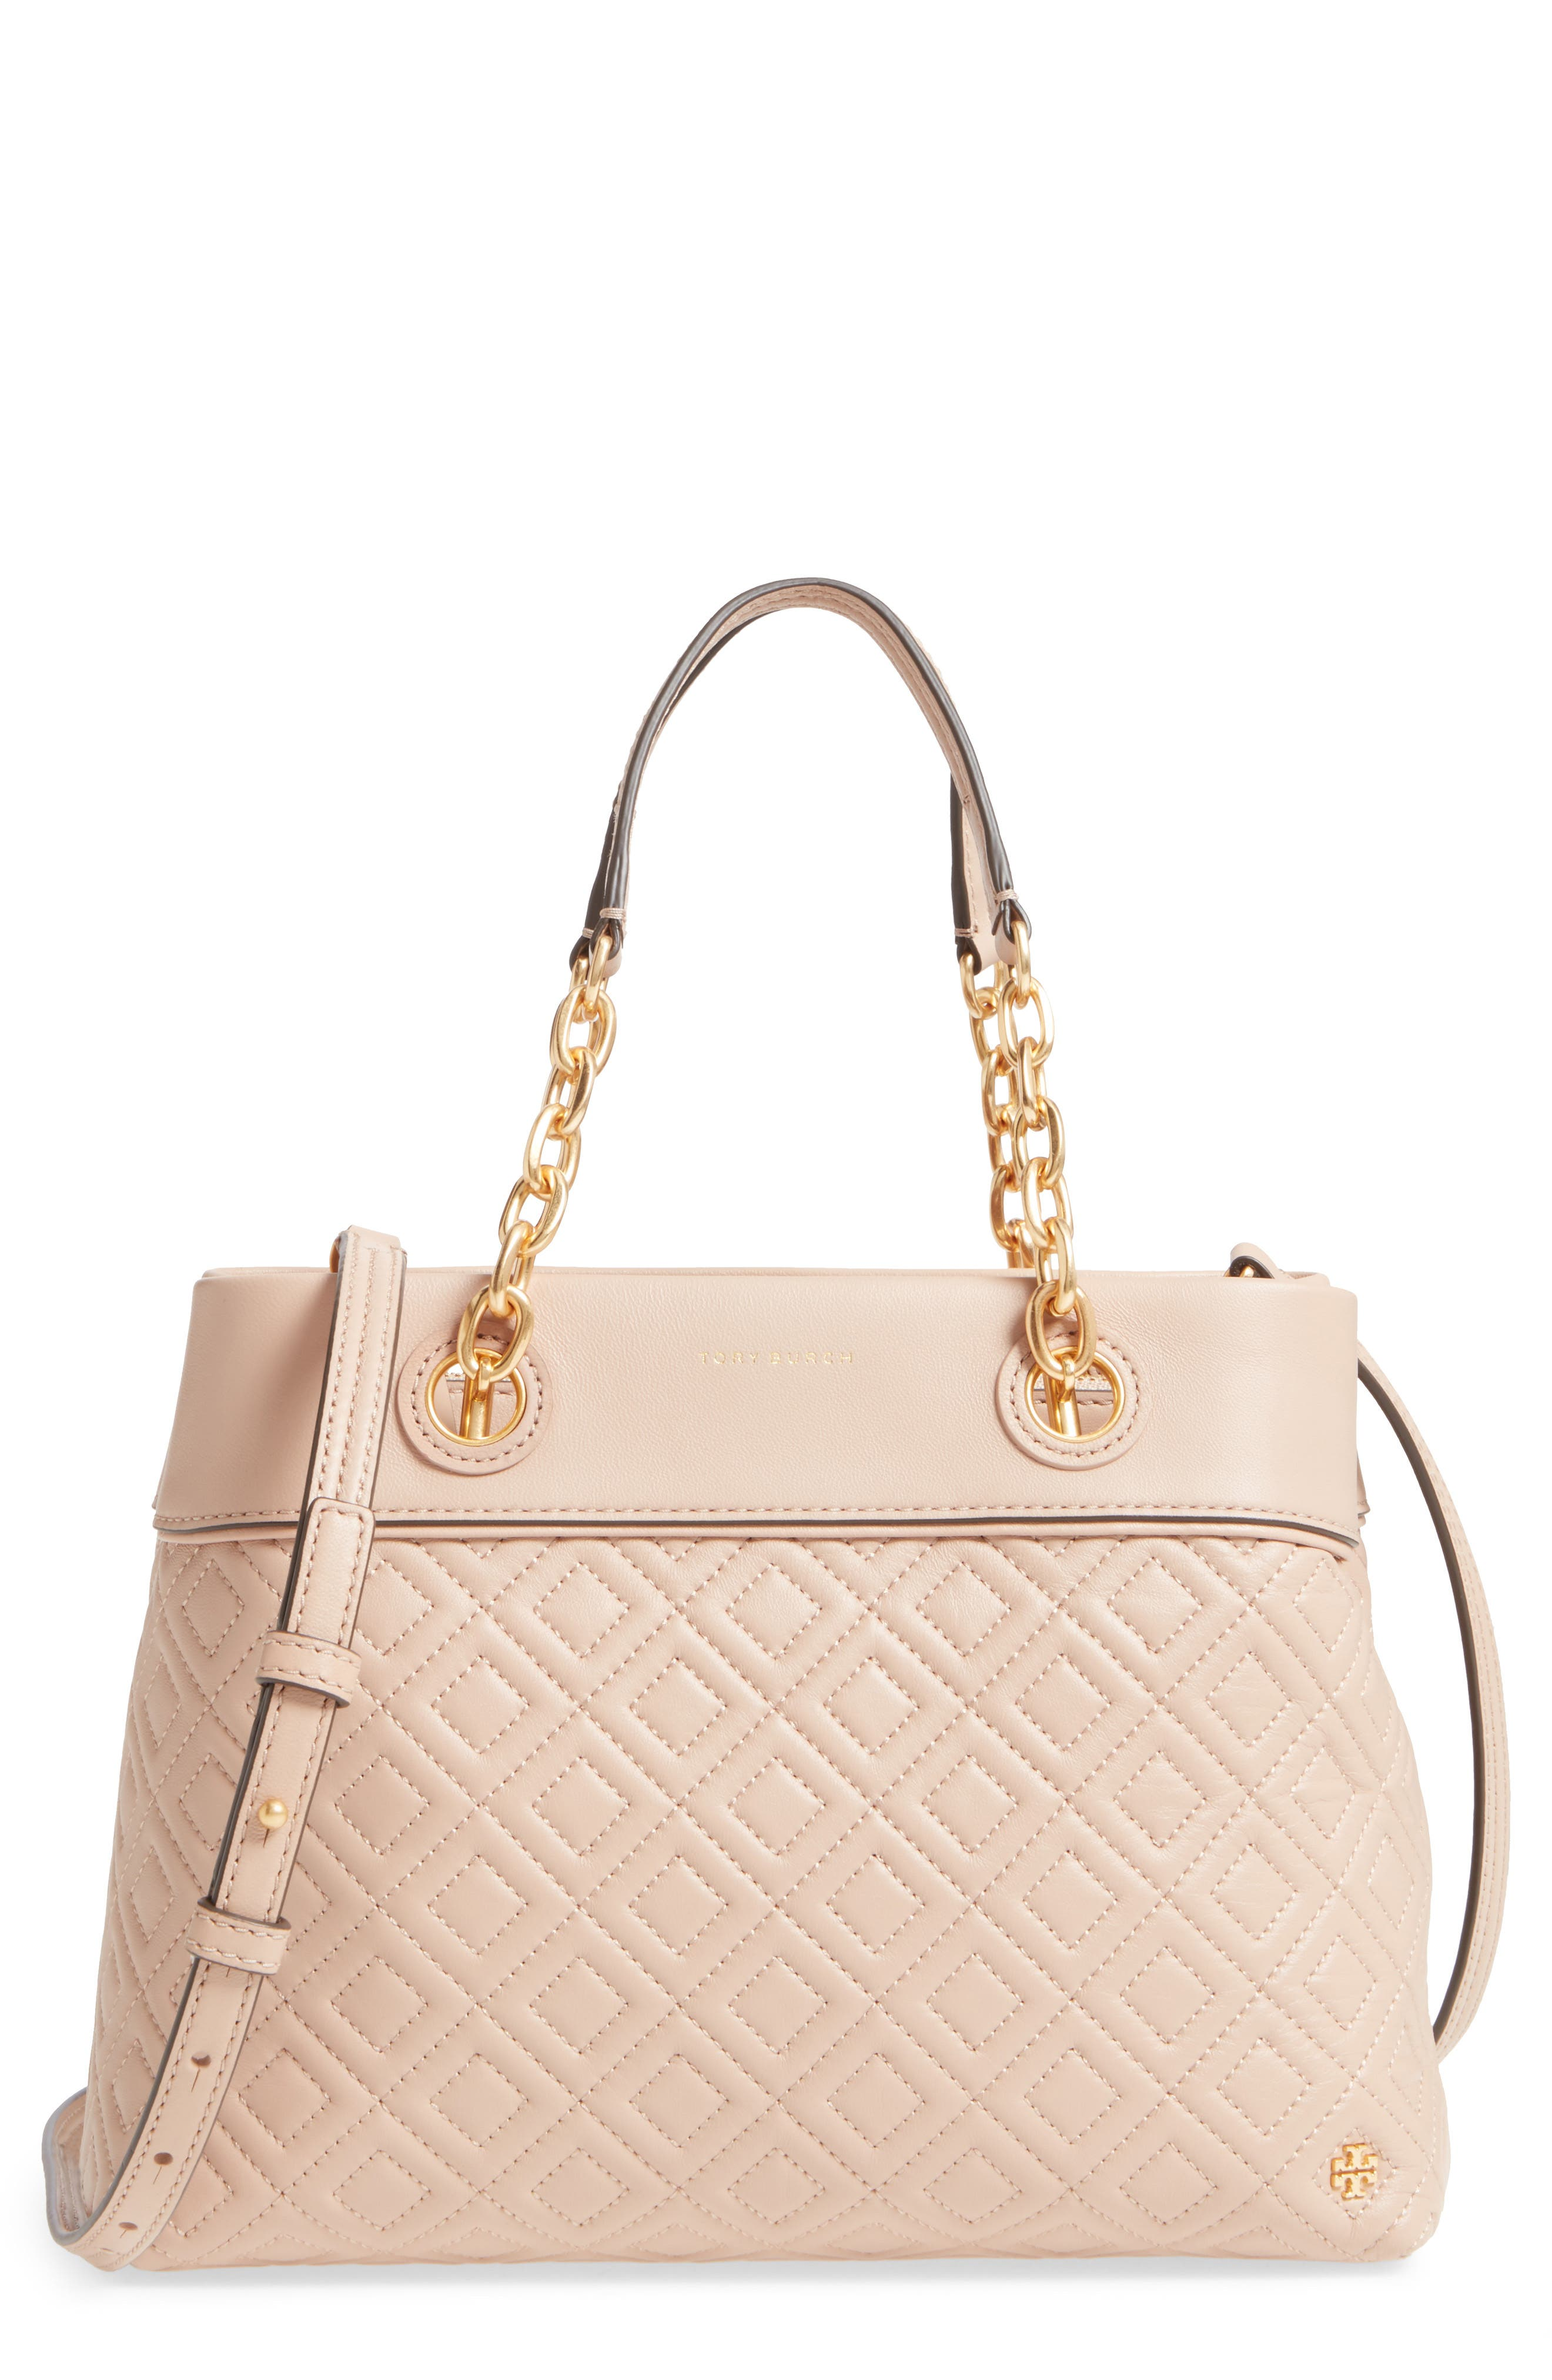 Alternate Image 1 Selected - Tory Burch Small Fleming Leather Tote